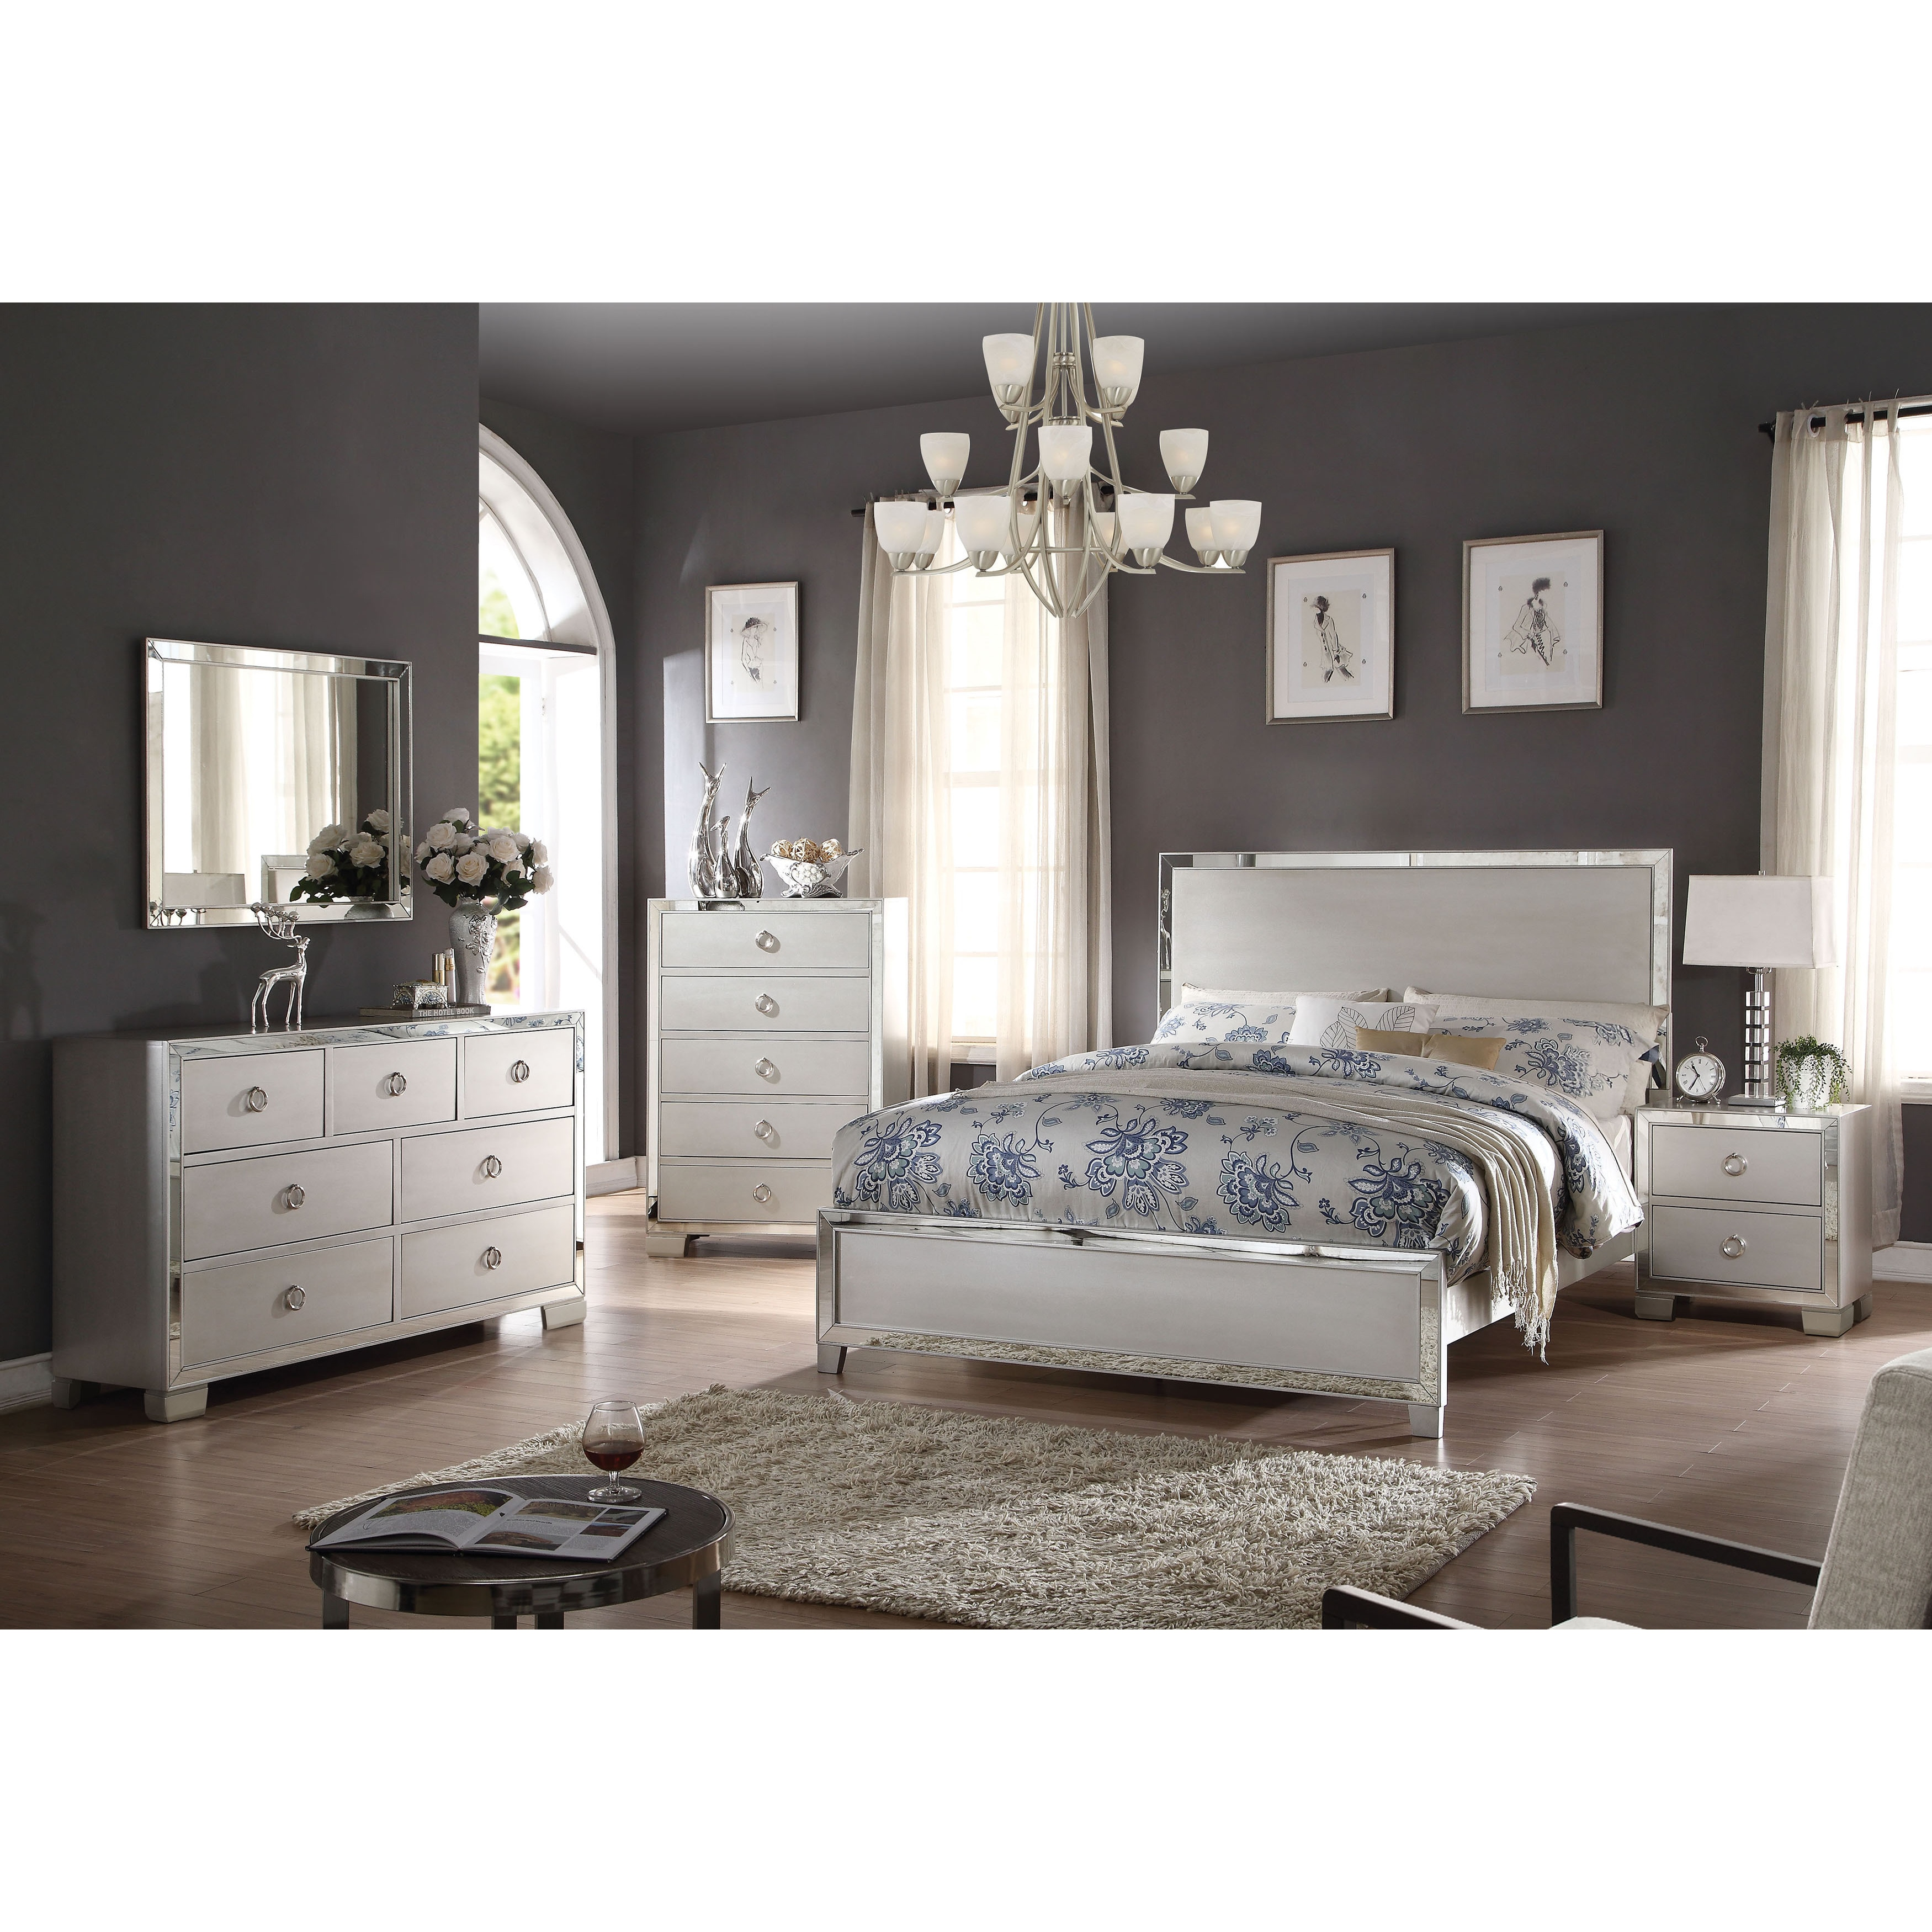 Acme Furniture Voeville II 4 Piece Bedroom Set Platinum Free